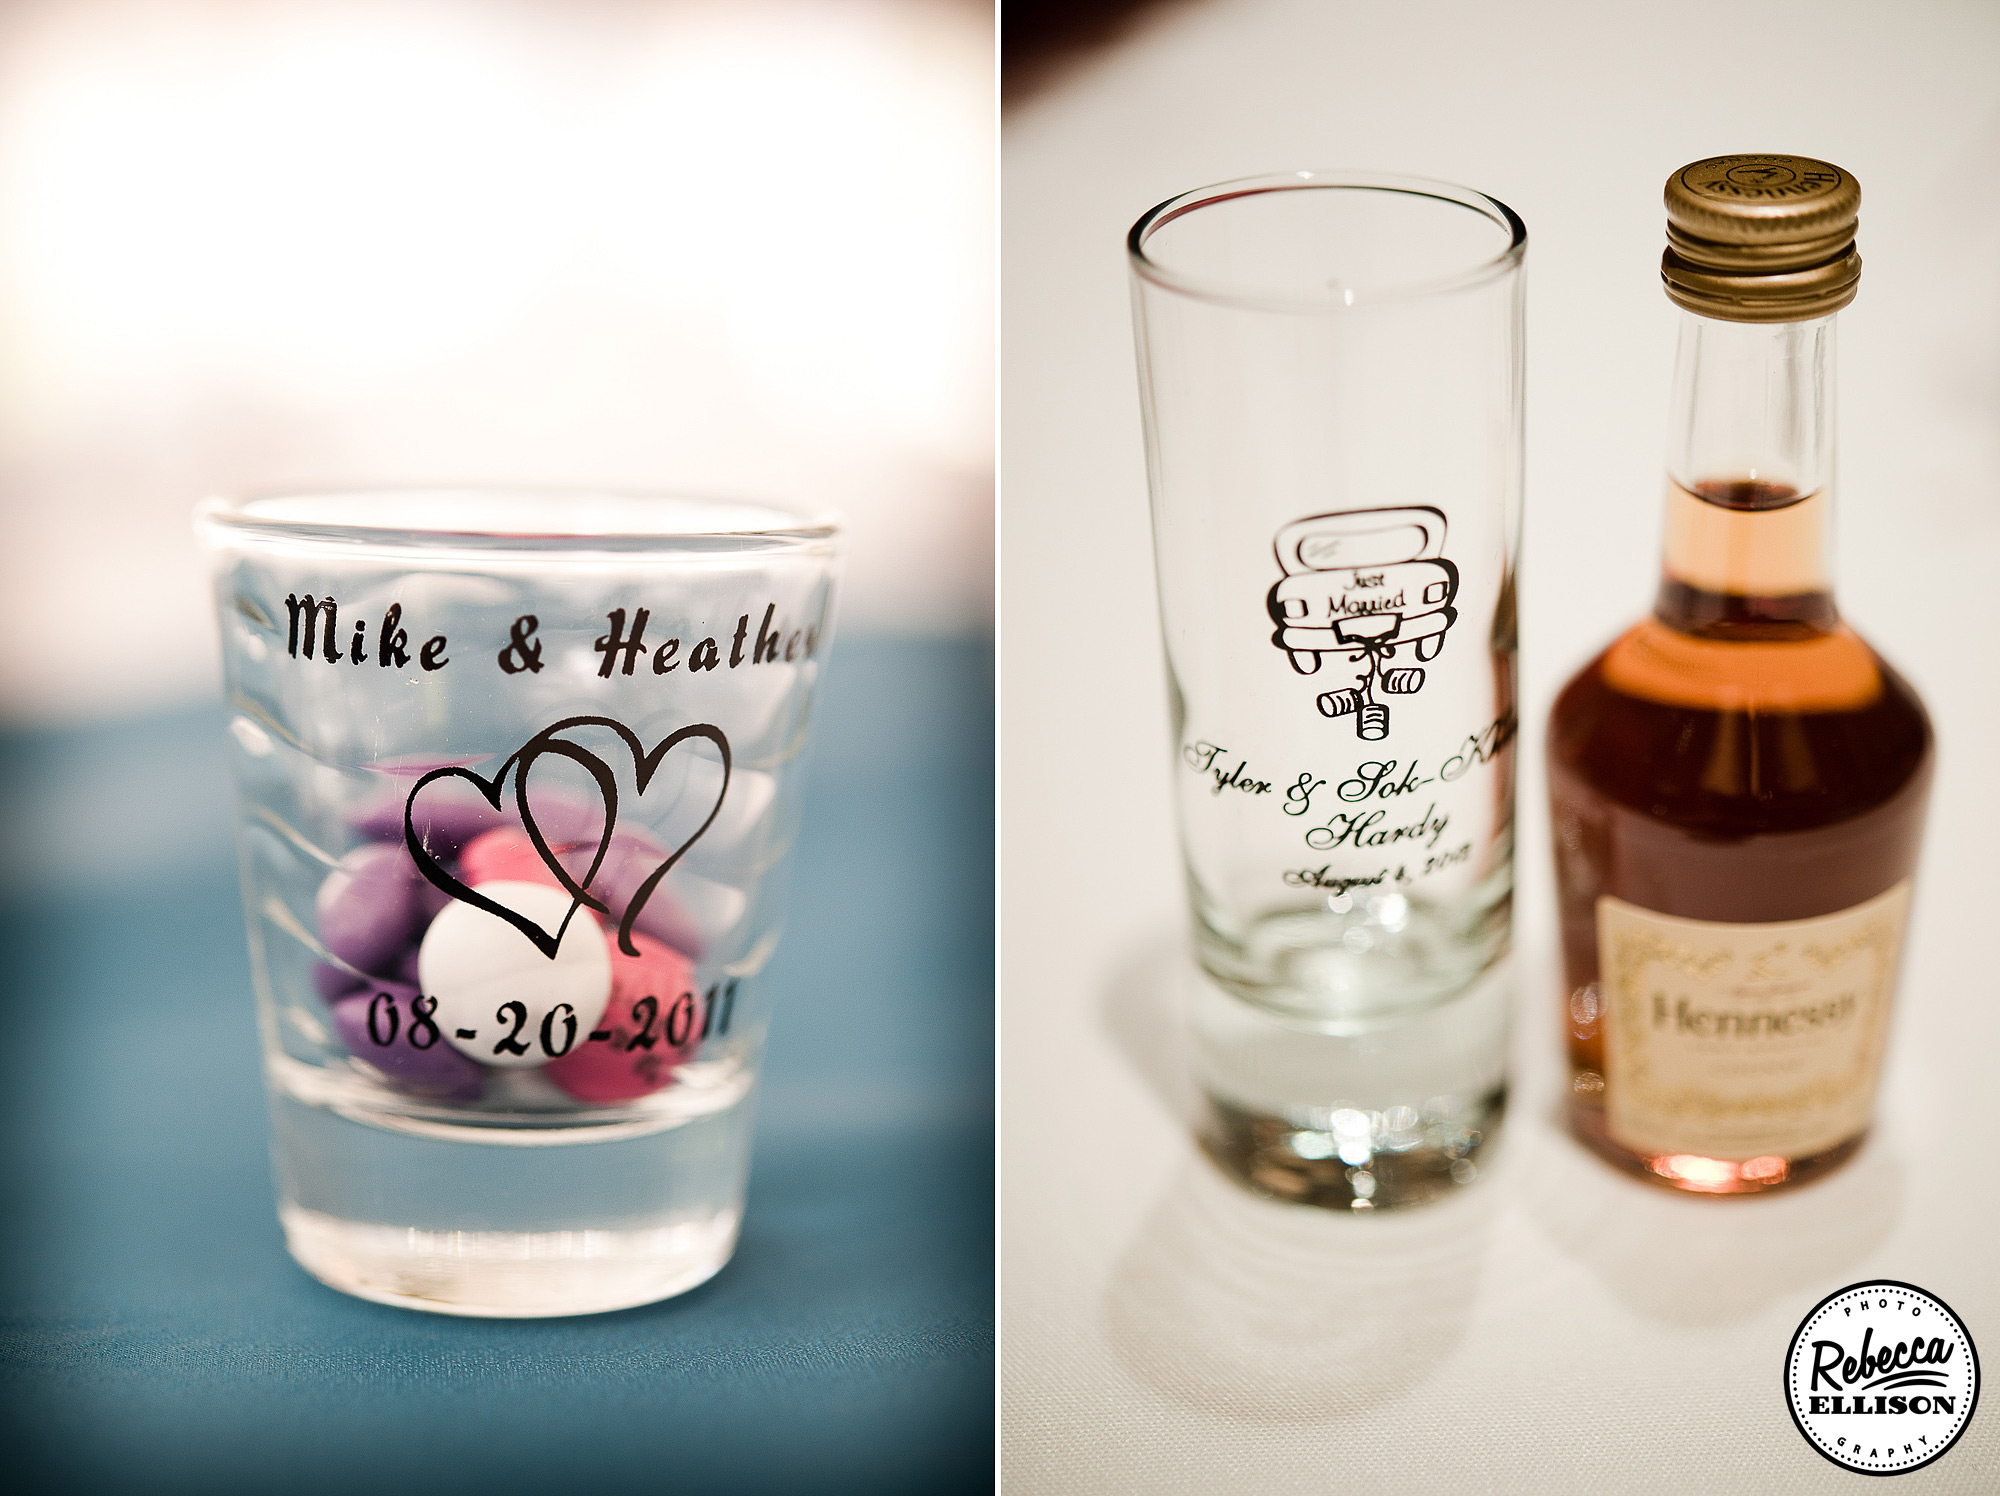 Wedding Ideas Gifts For Guests: Wedding Favors For Guests